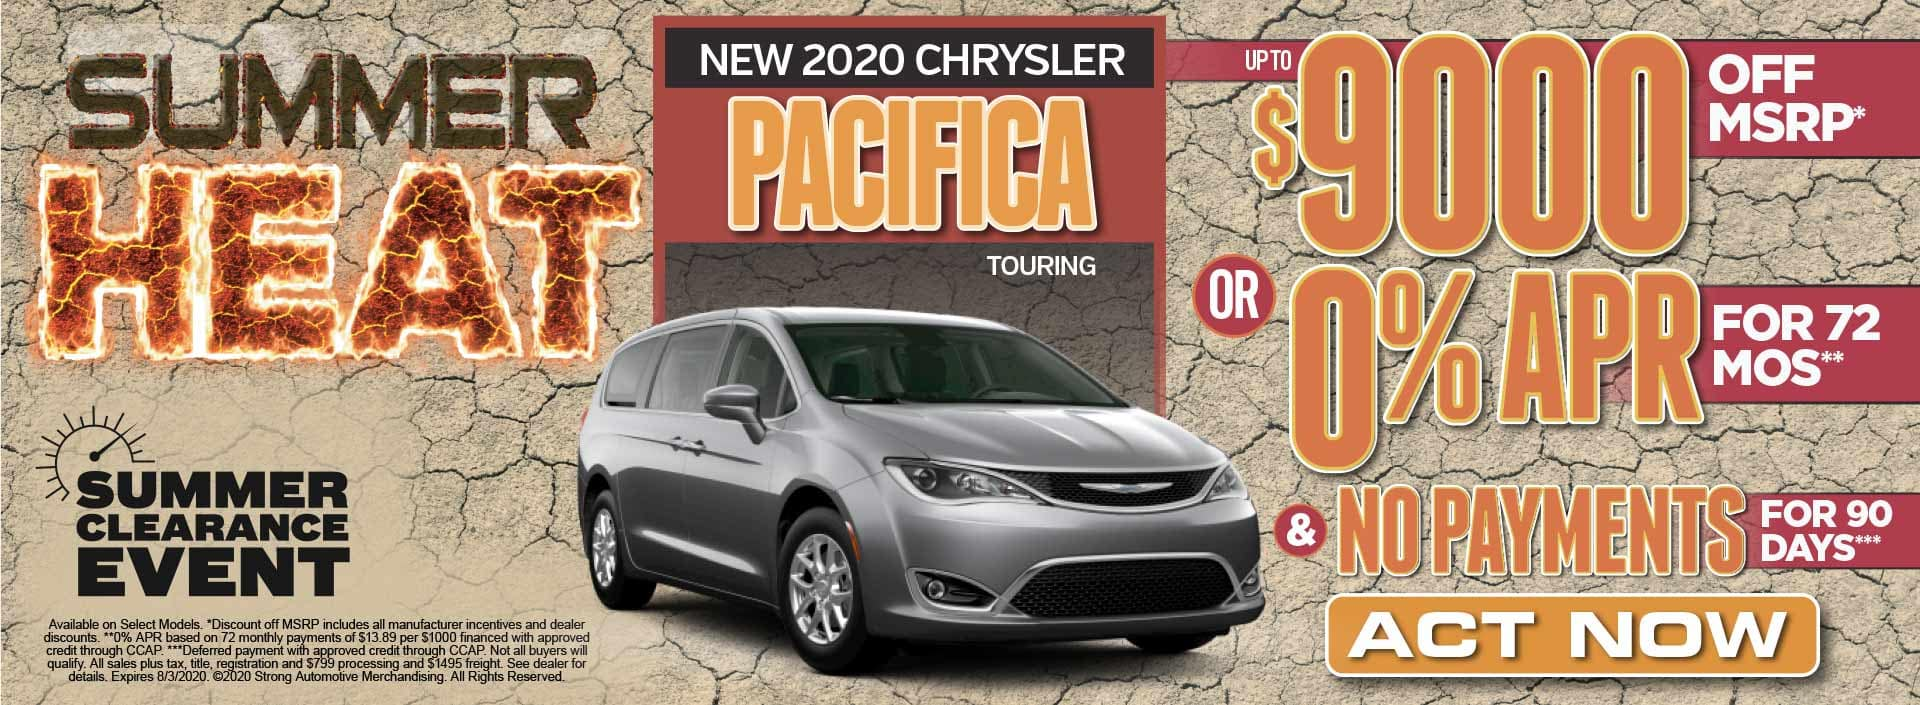 New 2020 Chrysler Pacifica up to $9000 Off MSRP* Act Now